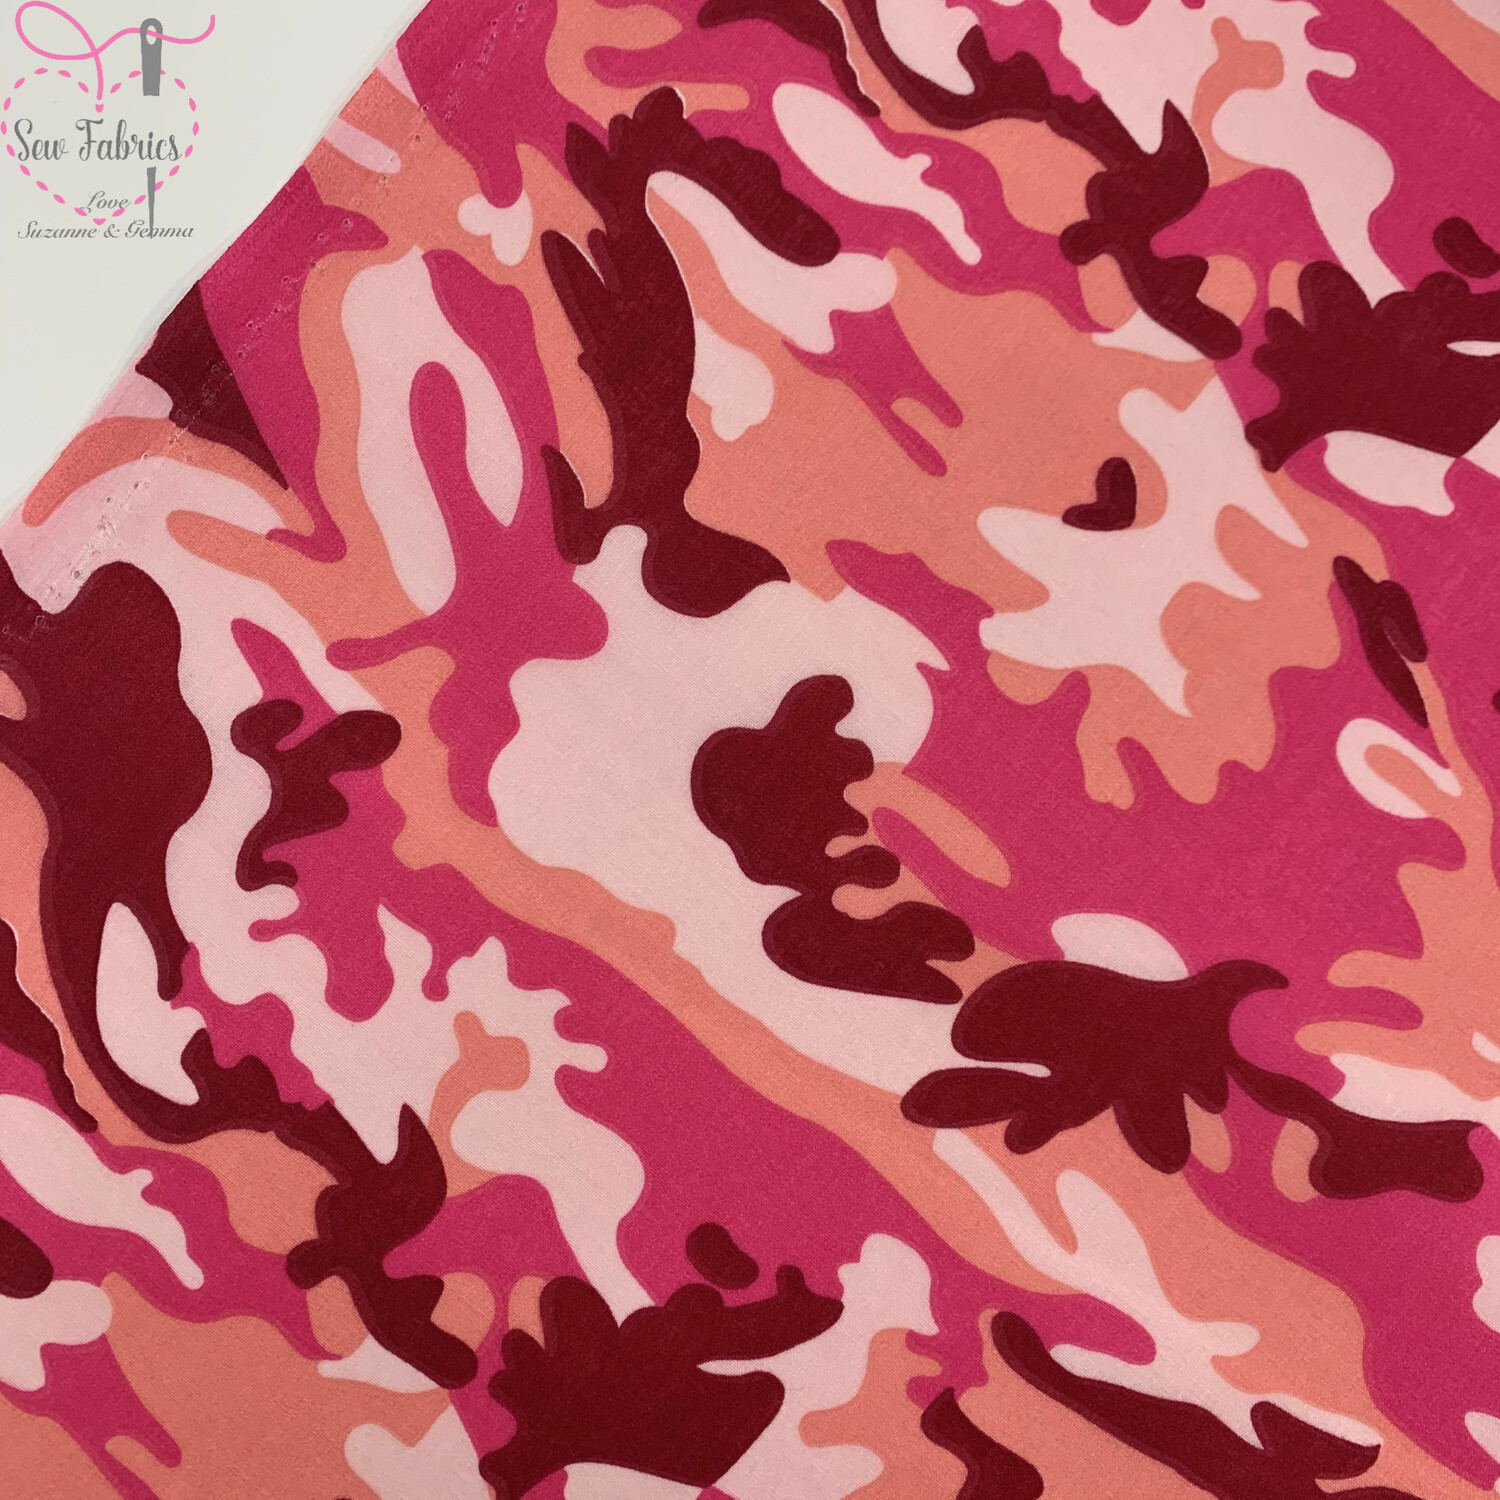 Pink Camouflage Print Polycotton Fabric, Novelty Craft Material